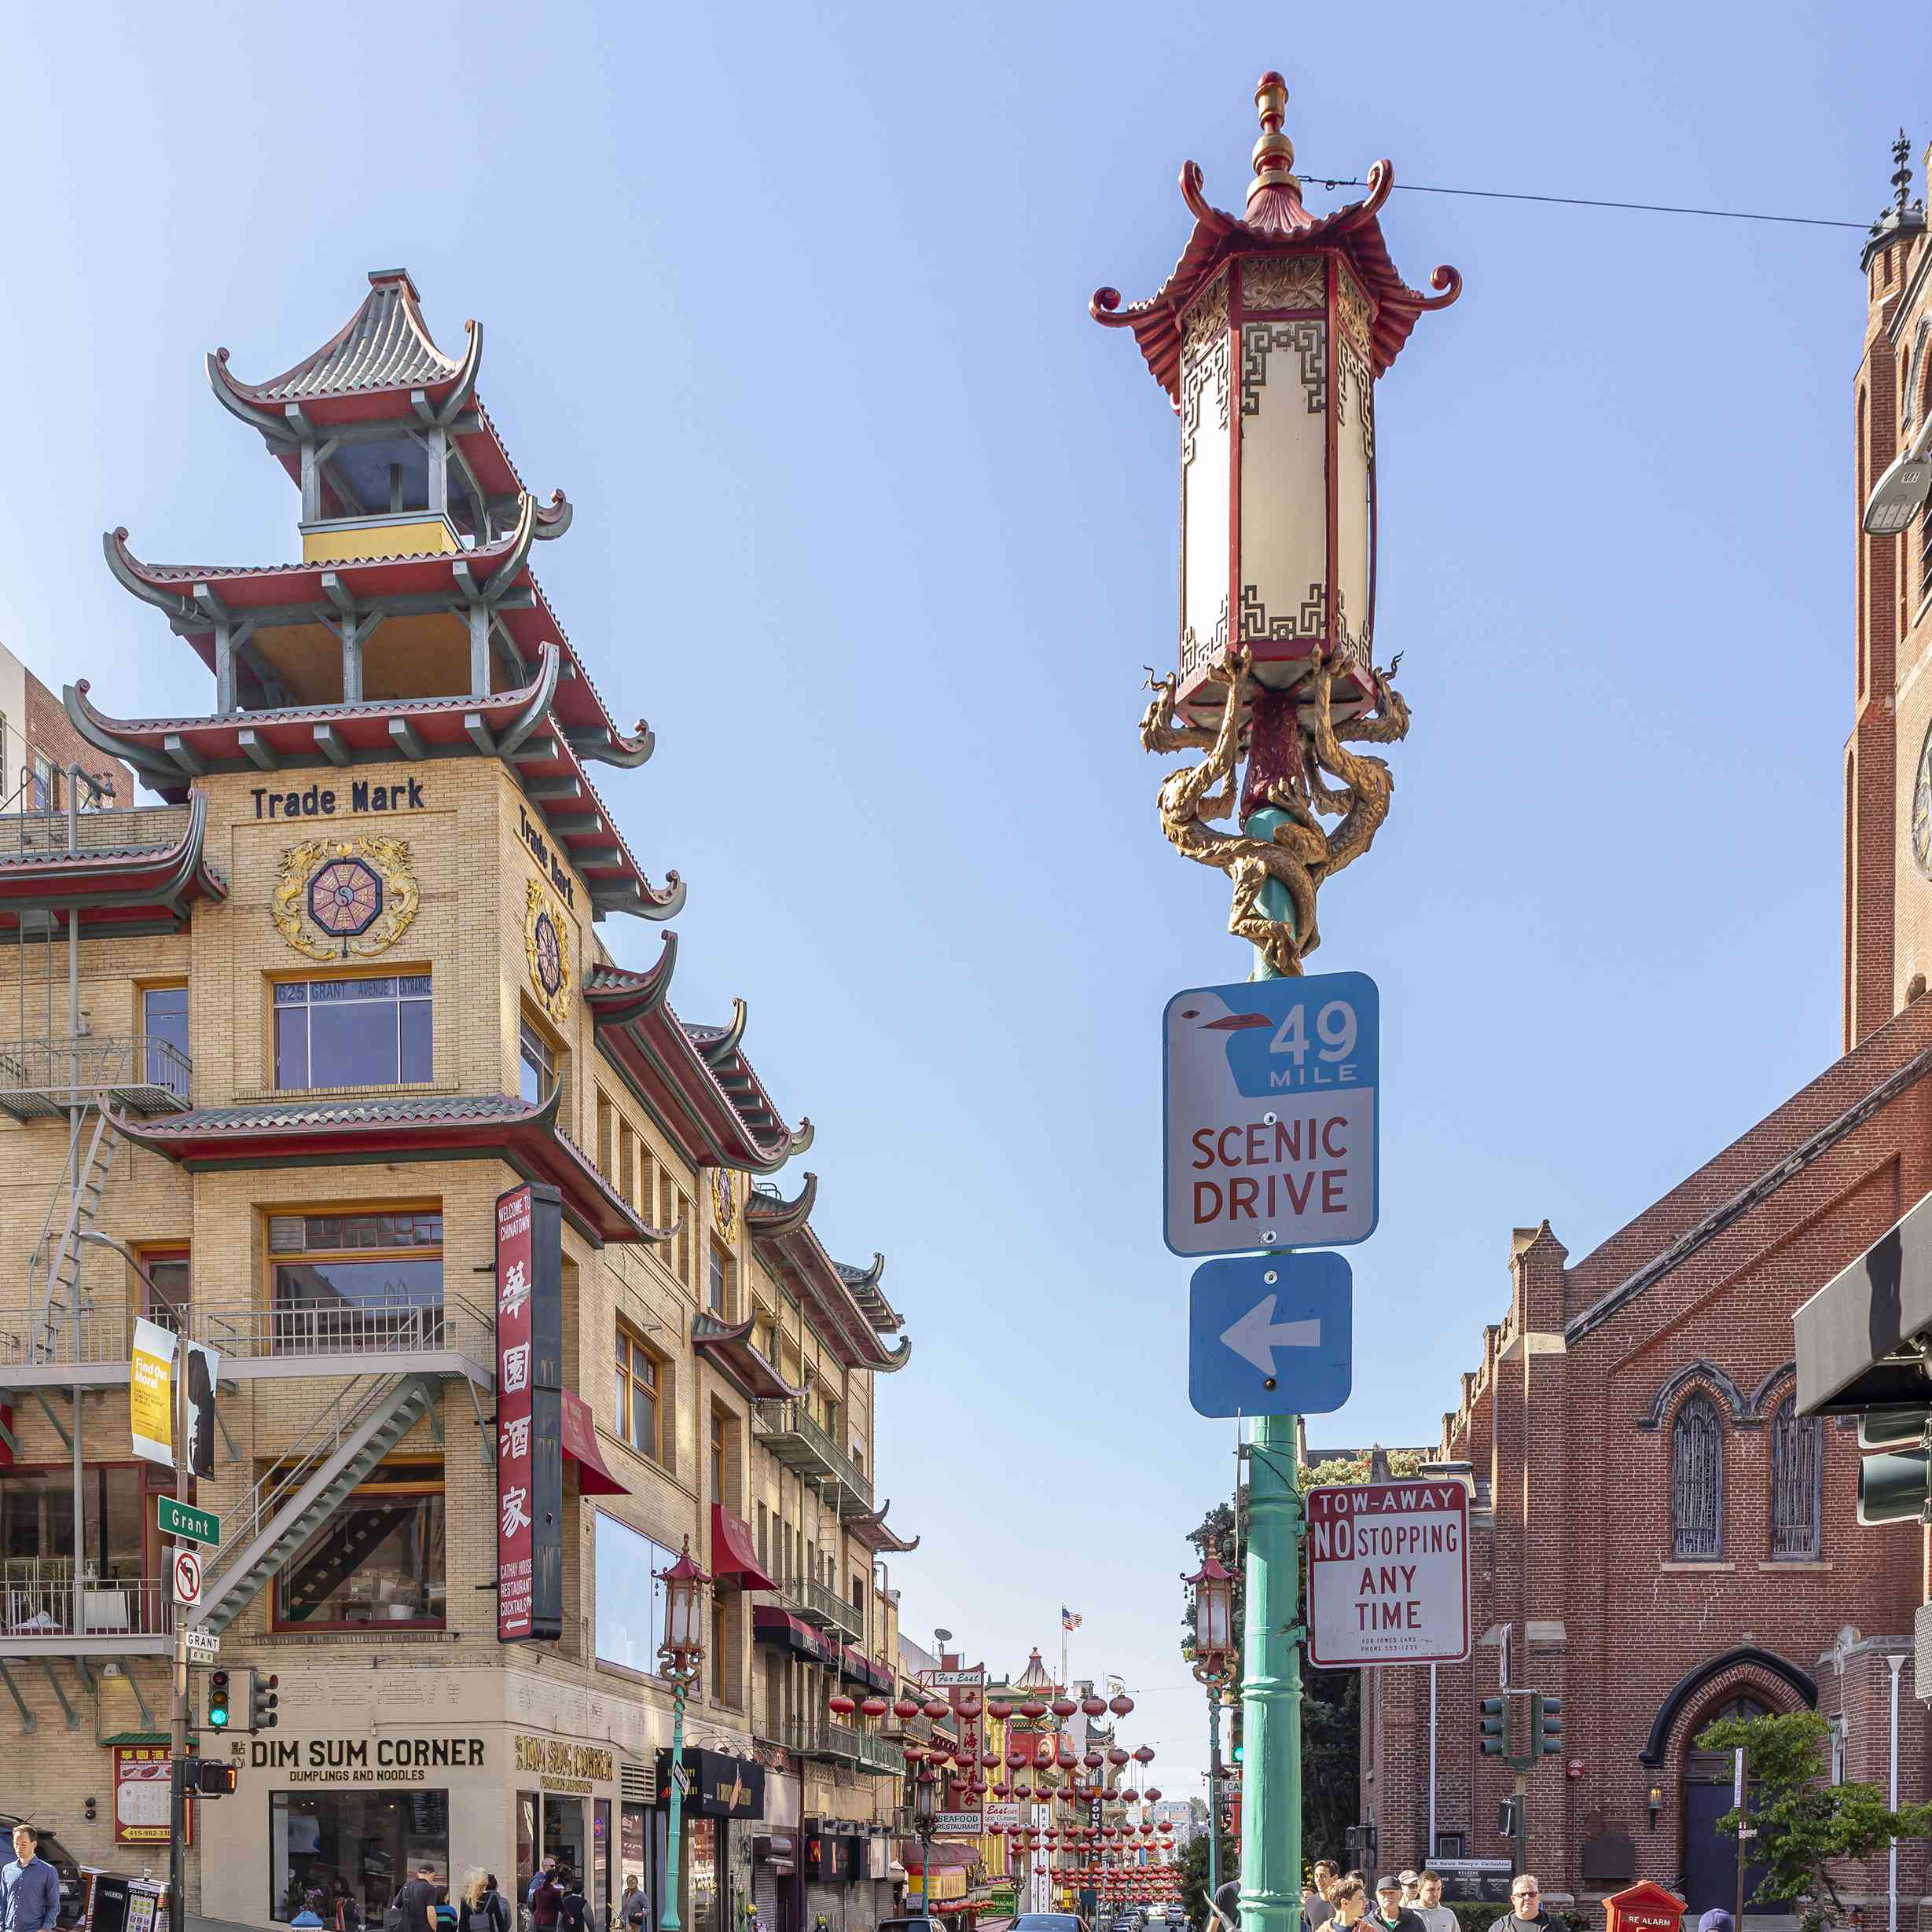 A decorative lamp post in Chinatown